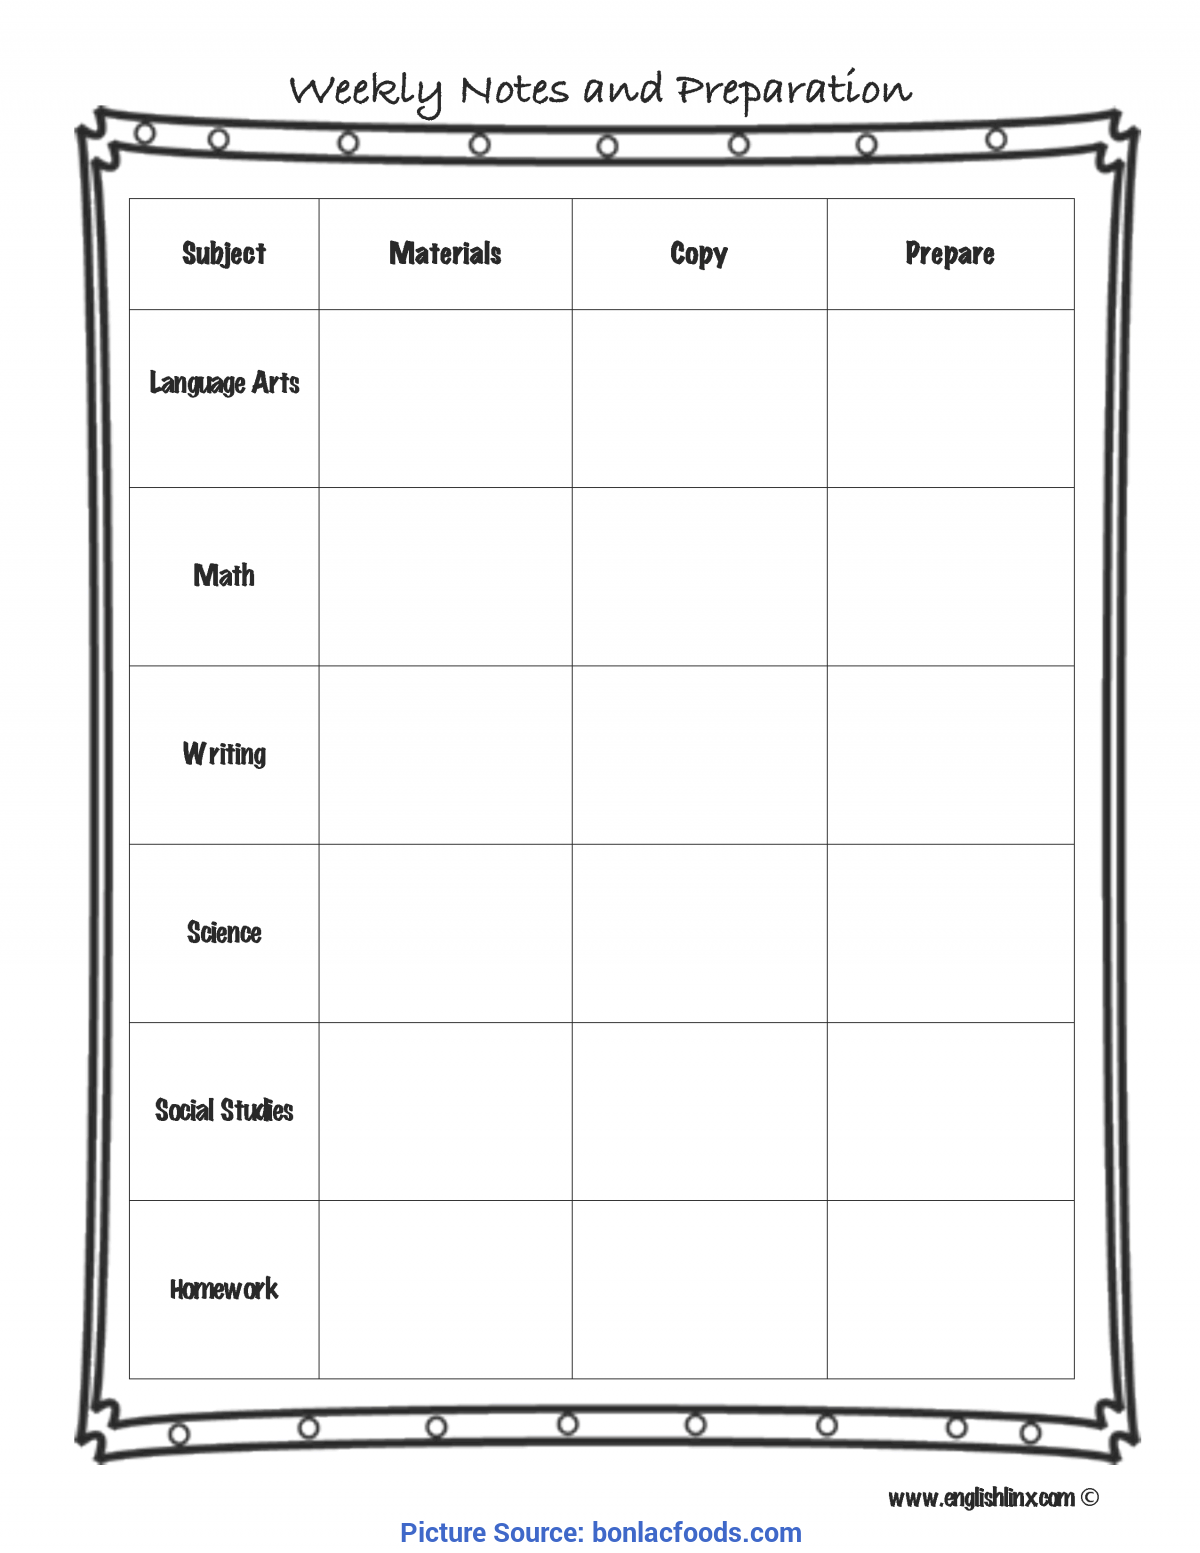 Top Jamestown Lesson Plans 2nd Grade Jamestown Elementary